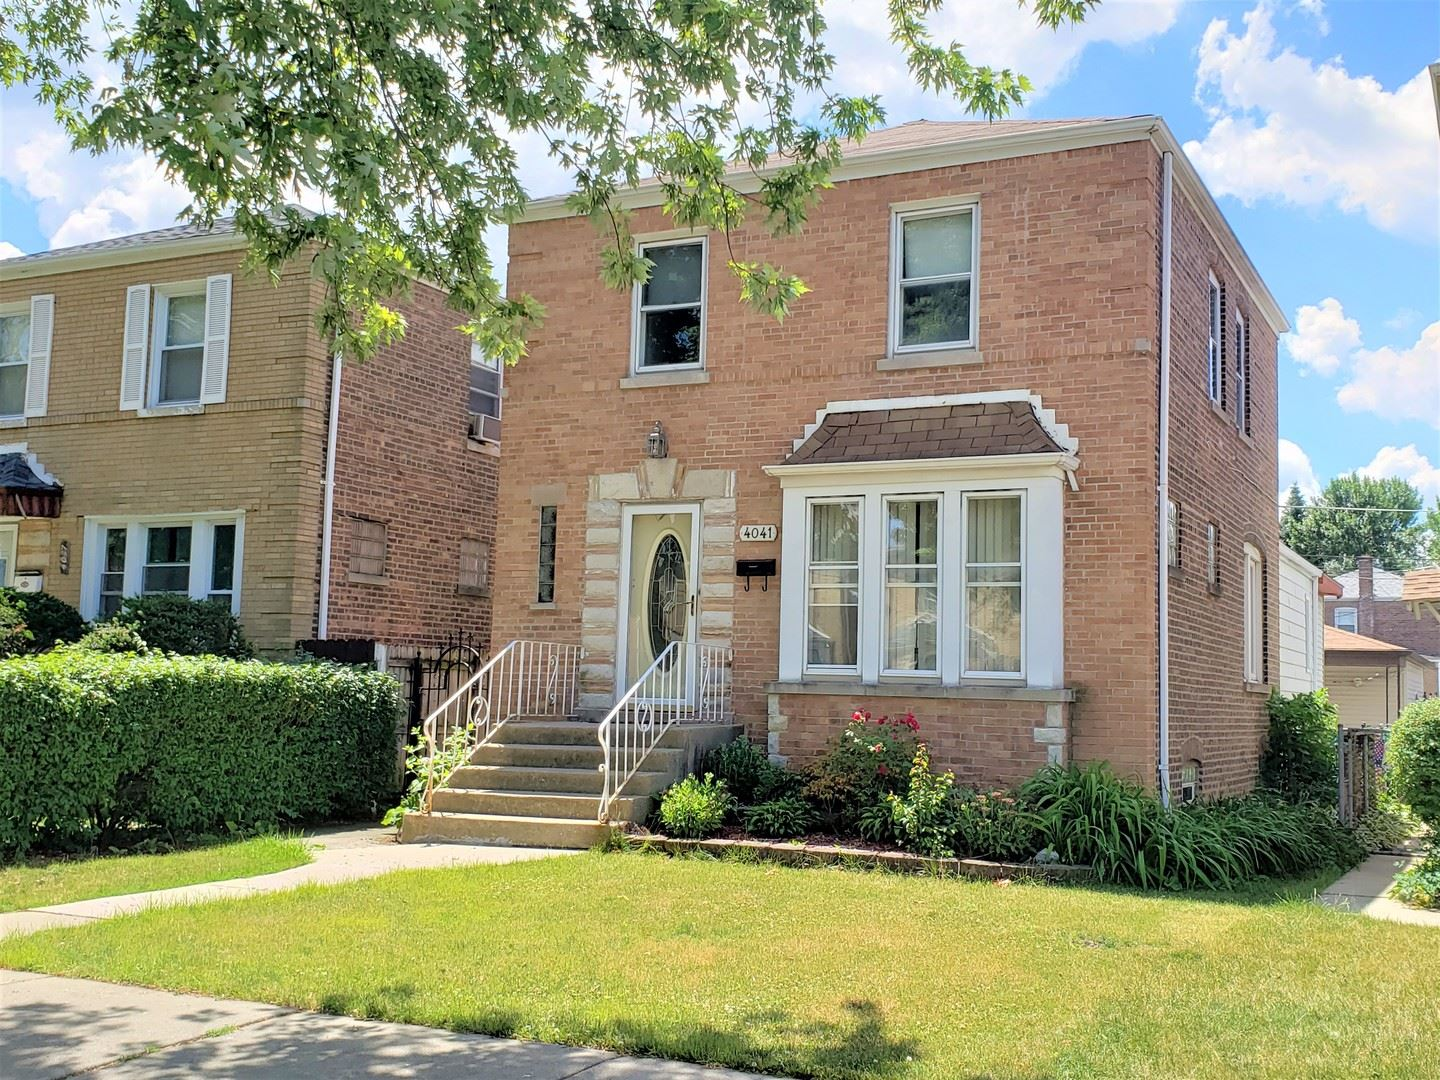 4041 W 56th Place, Chicago, IL 60629 - #: 10770839